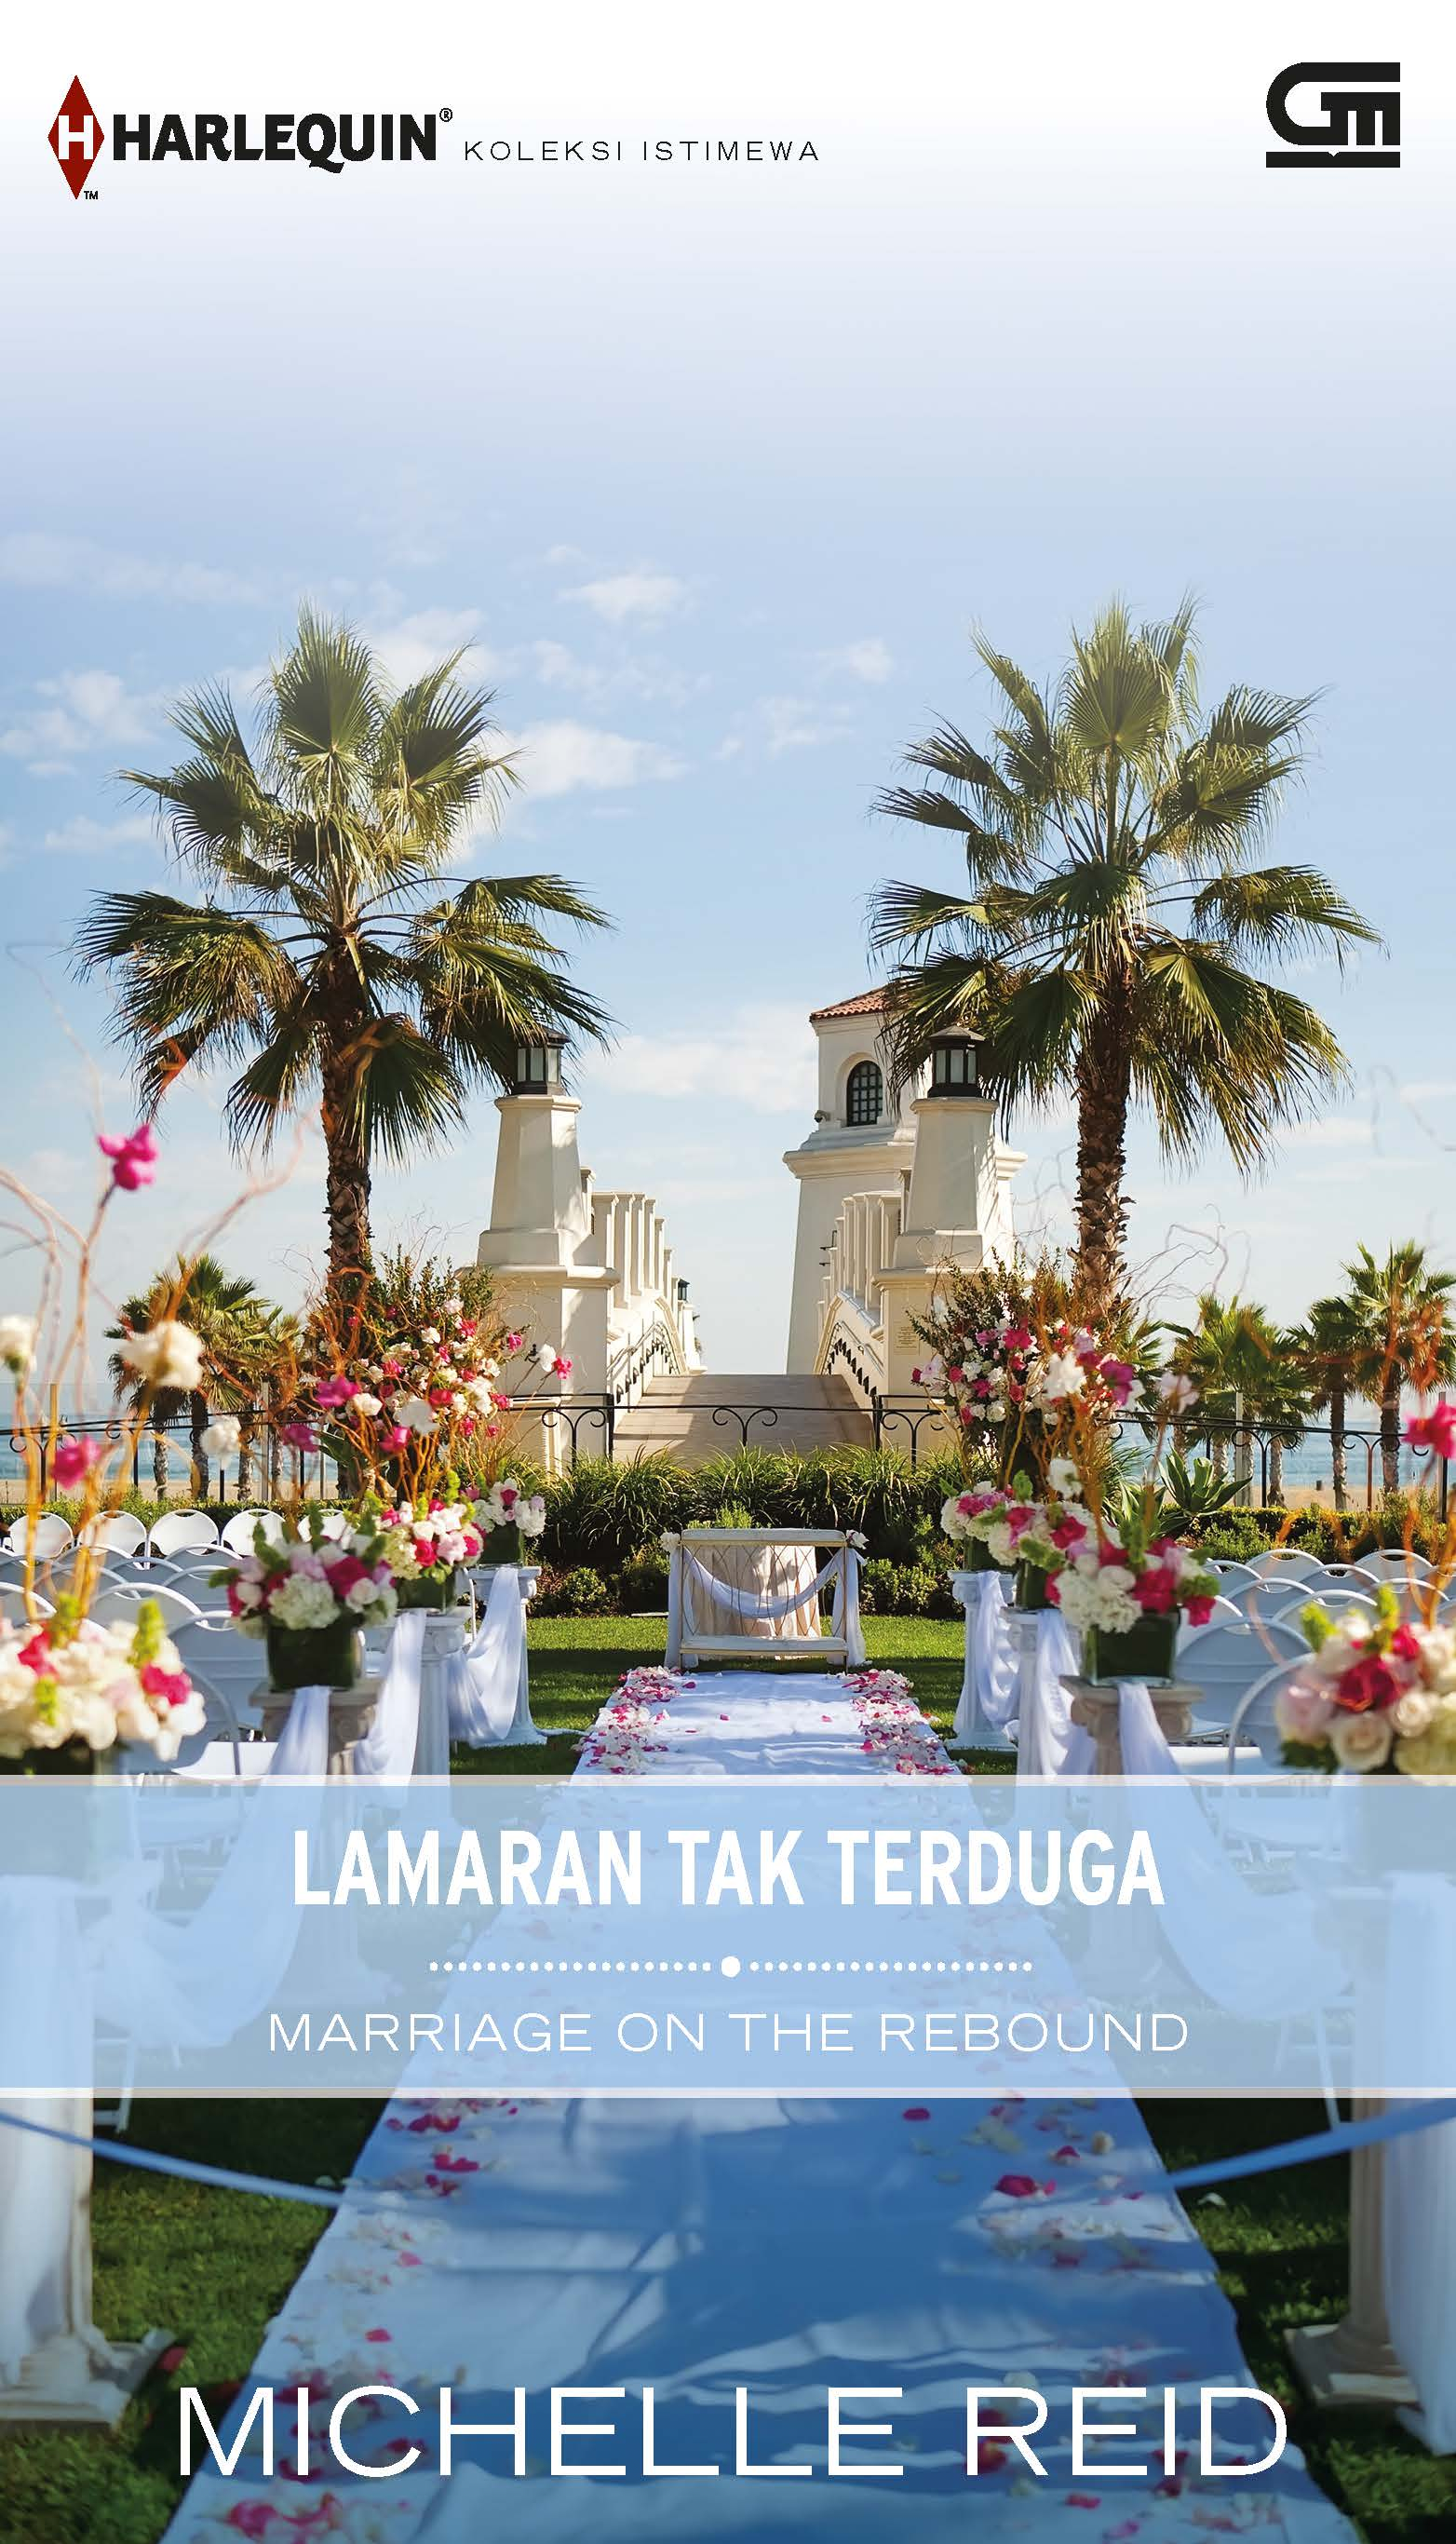 Harlequin Koleksi Istimewa: Lamaran tak Terduga (Marriage on the Rebound)